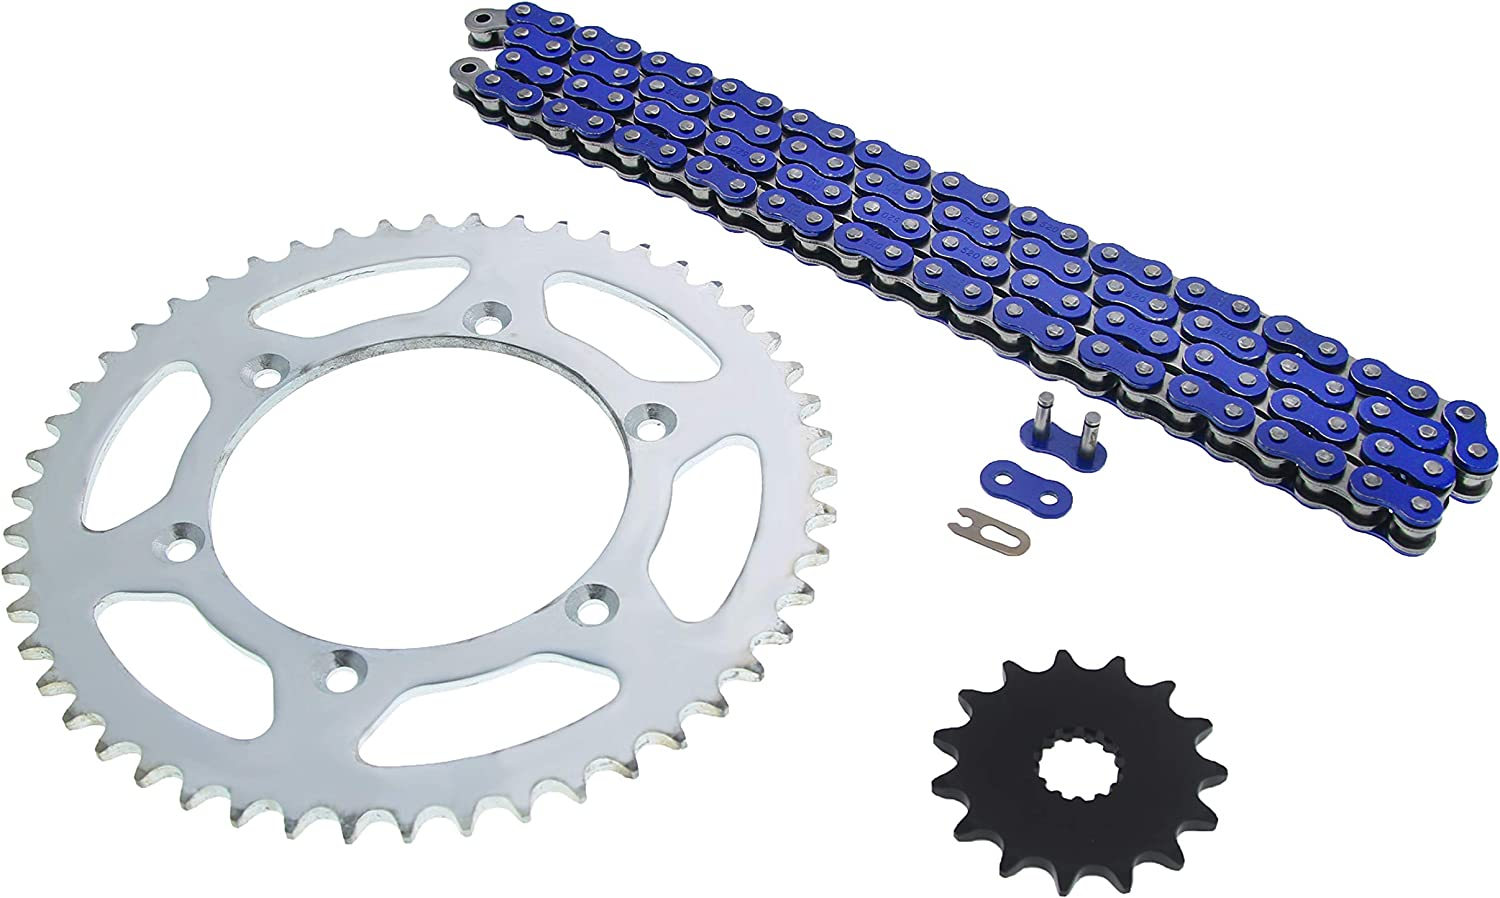 2003-2014 WR450 F O Ring Chain /& Sprocket 14//49 114L Yamaha 2000-2002 YZ426 F